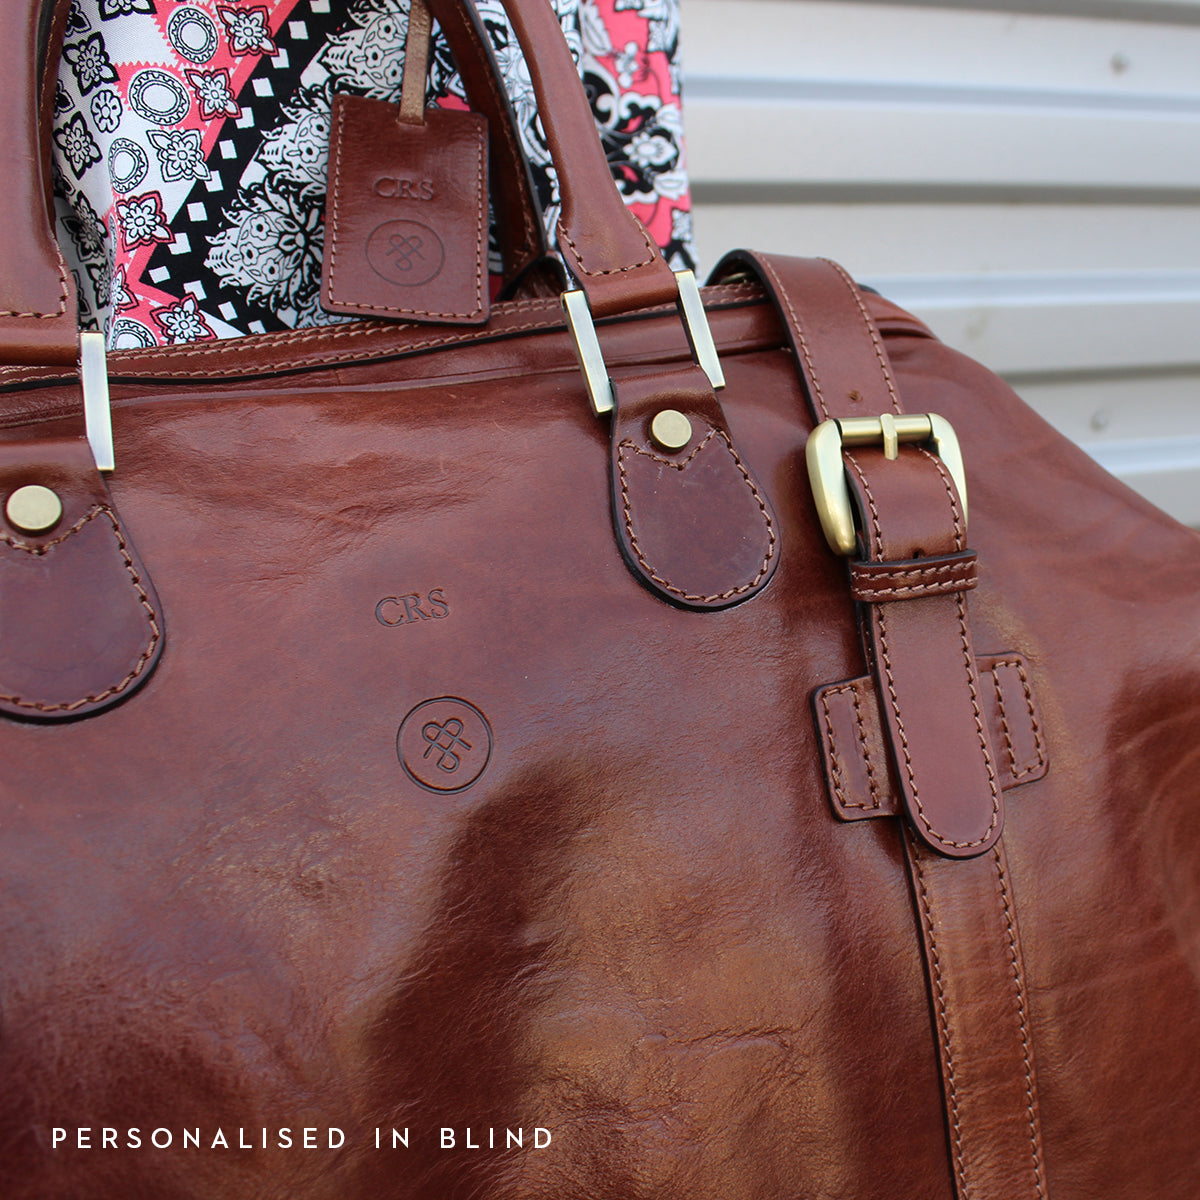 Image 9 of the Large 'Flero' Dark Chocolate Veg-Tanned Leather Holdall